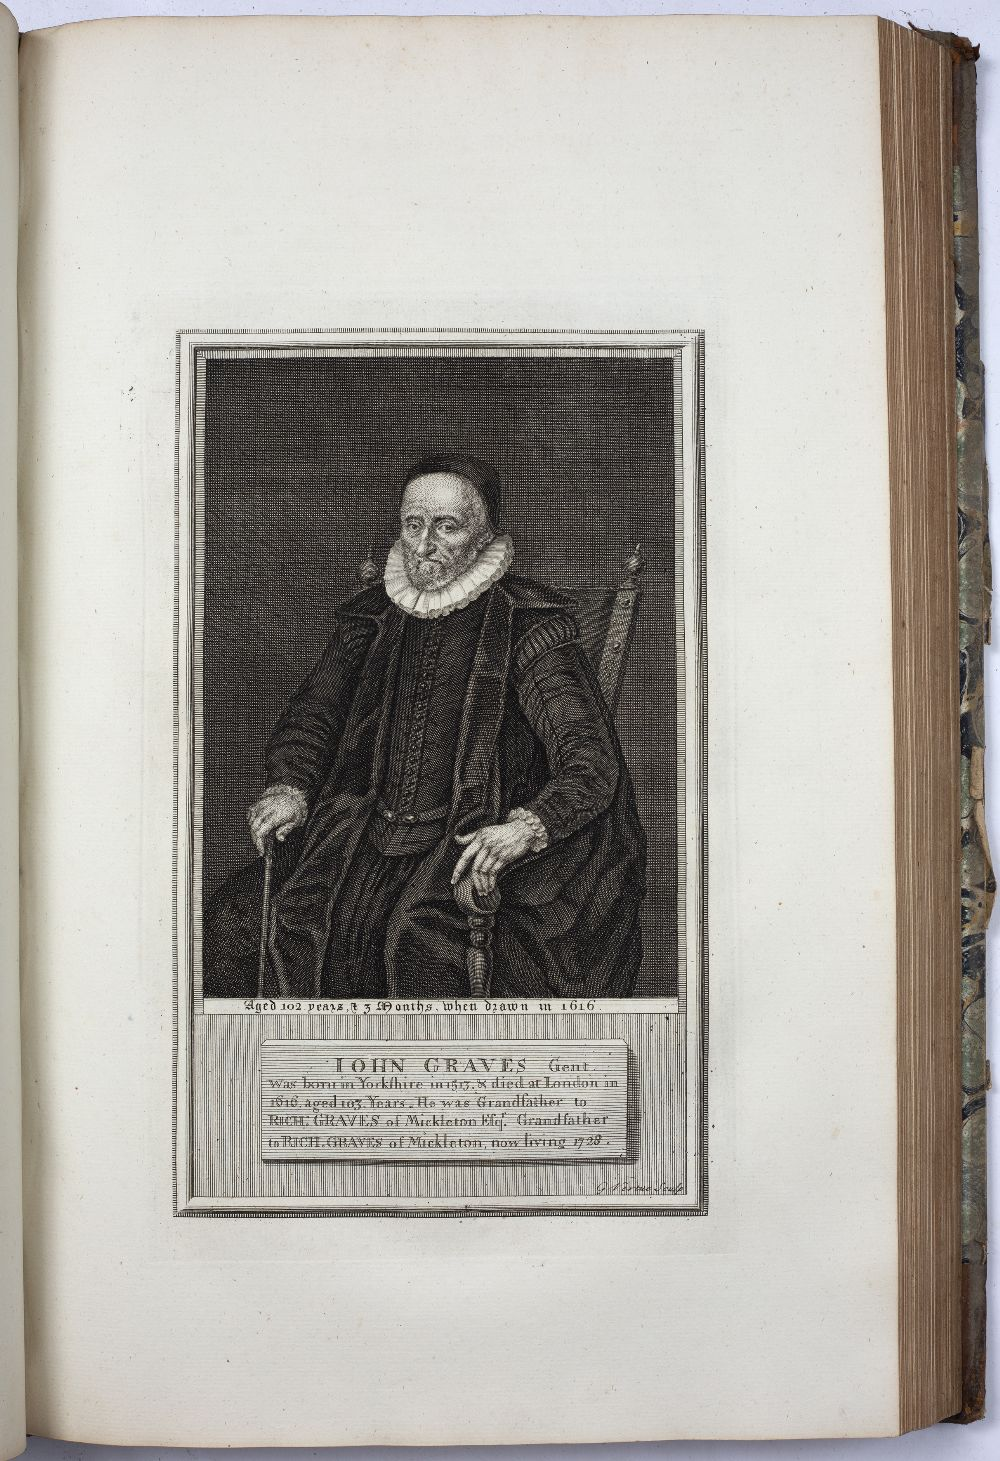 NASH, Treadway Russell (1724-1811) English Clergyman and Antiquarian Collections for the History - Image 6 of 6